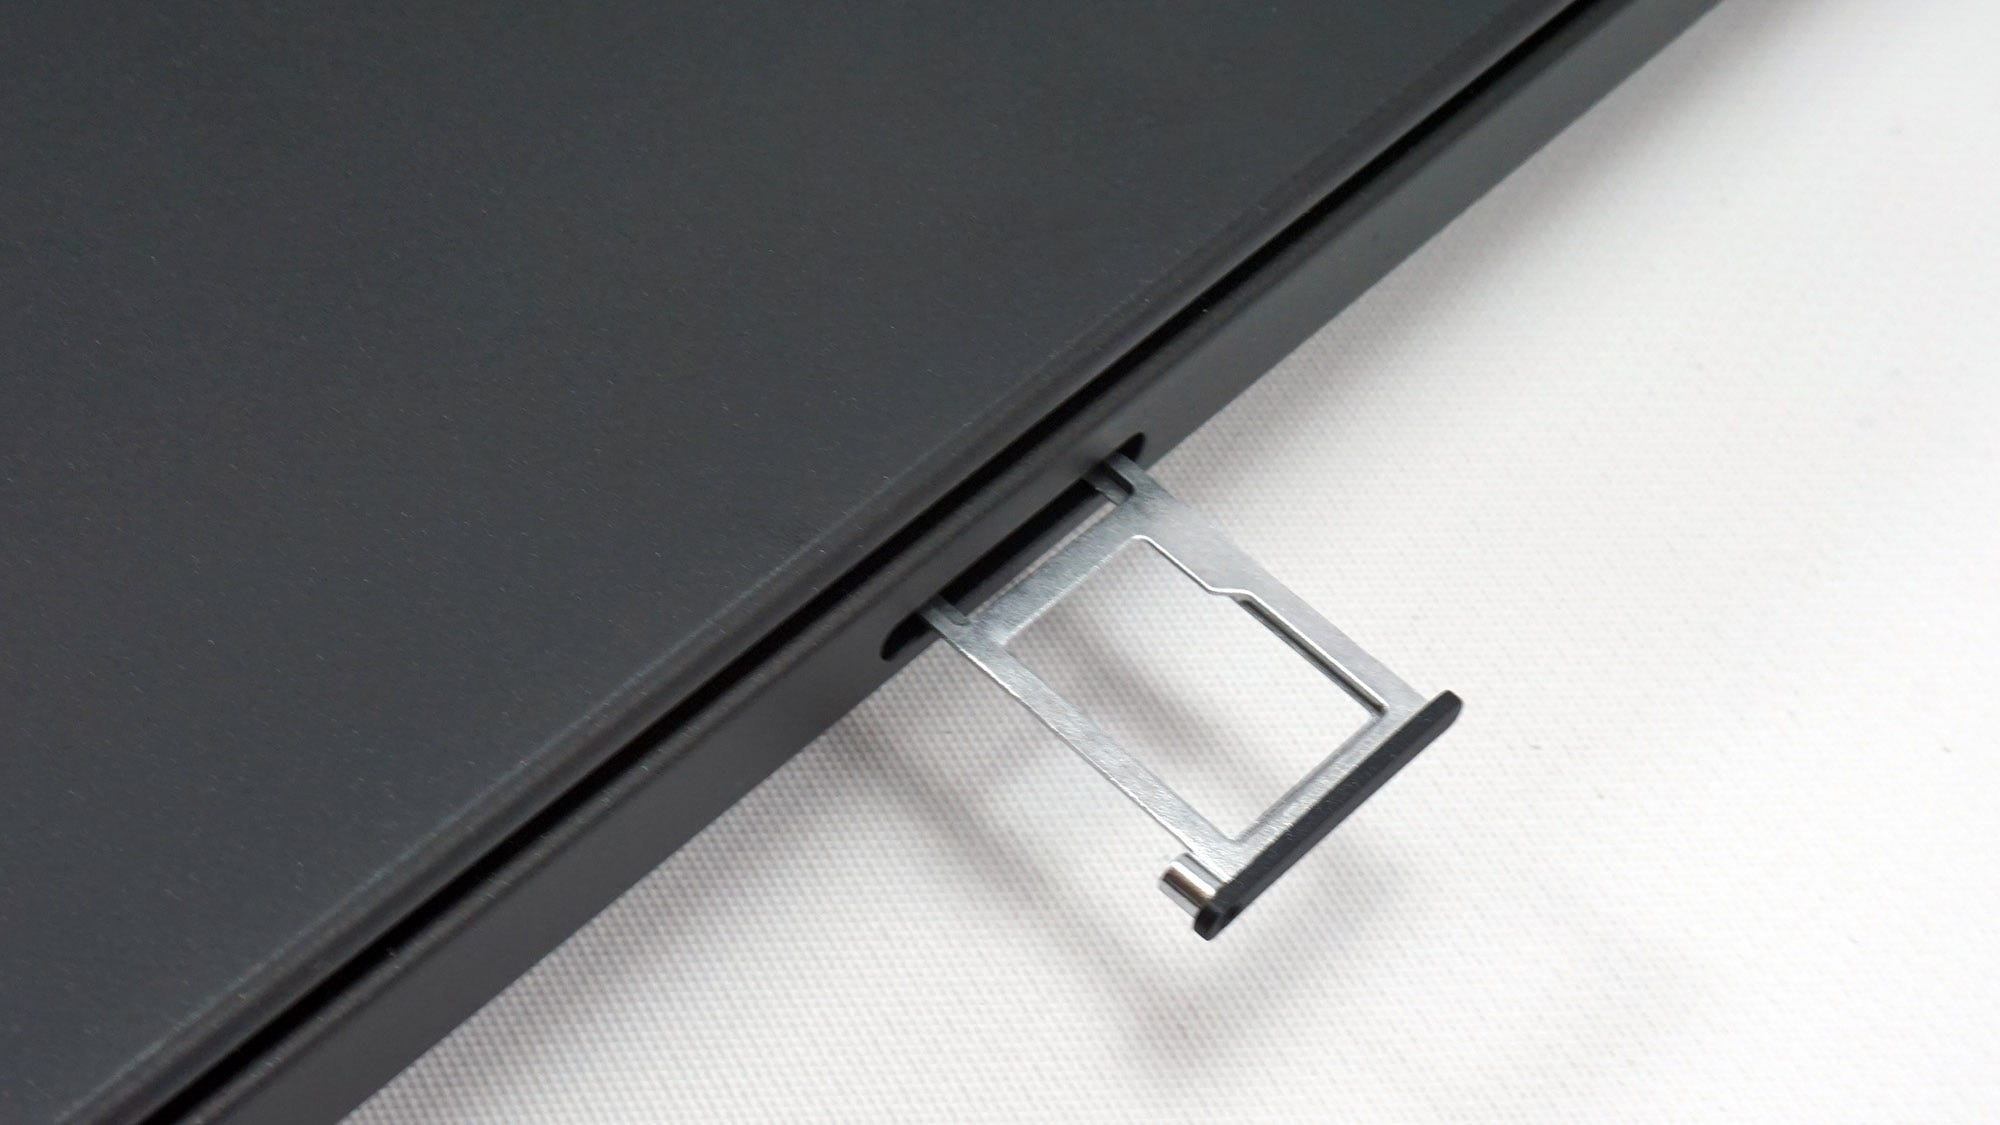 The SIM/MicroSD card tray on the back of the T490s.